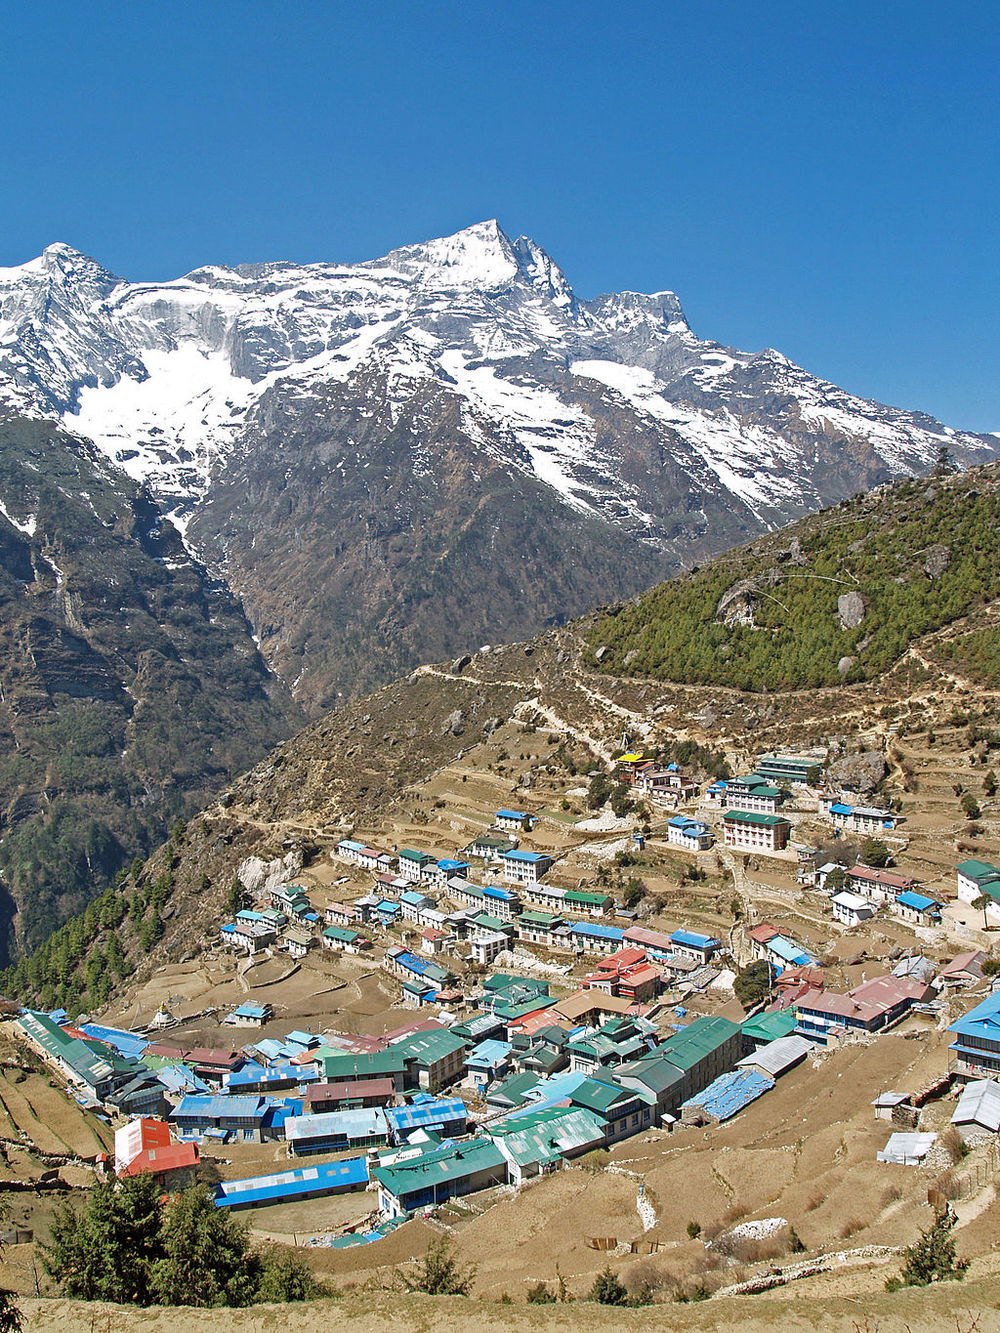 Namche Bazaar   village located at 3,440 metres (11,286 ft) above the sea level in   Khumbu region  , northeastern   Nepal  . The   Kongde Ri peak b with its 6,187 m (20,299 ft) can be seen in the background. Photo by stevehicks [CC-BY-2.0 (http://creativecommons.org/licenses/by/2.0)], via Wikimedia Commons